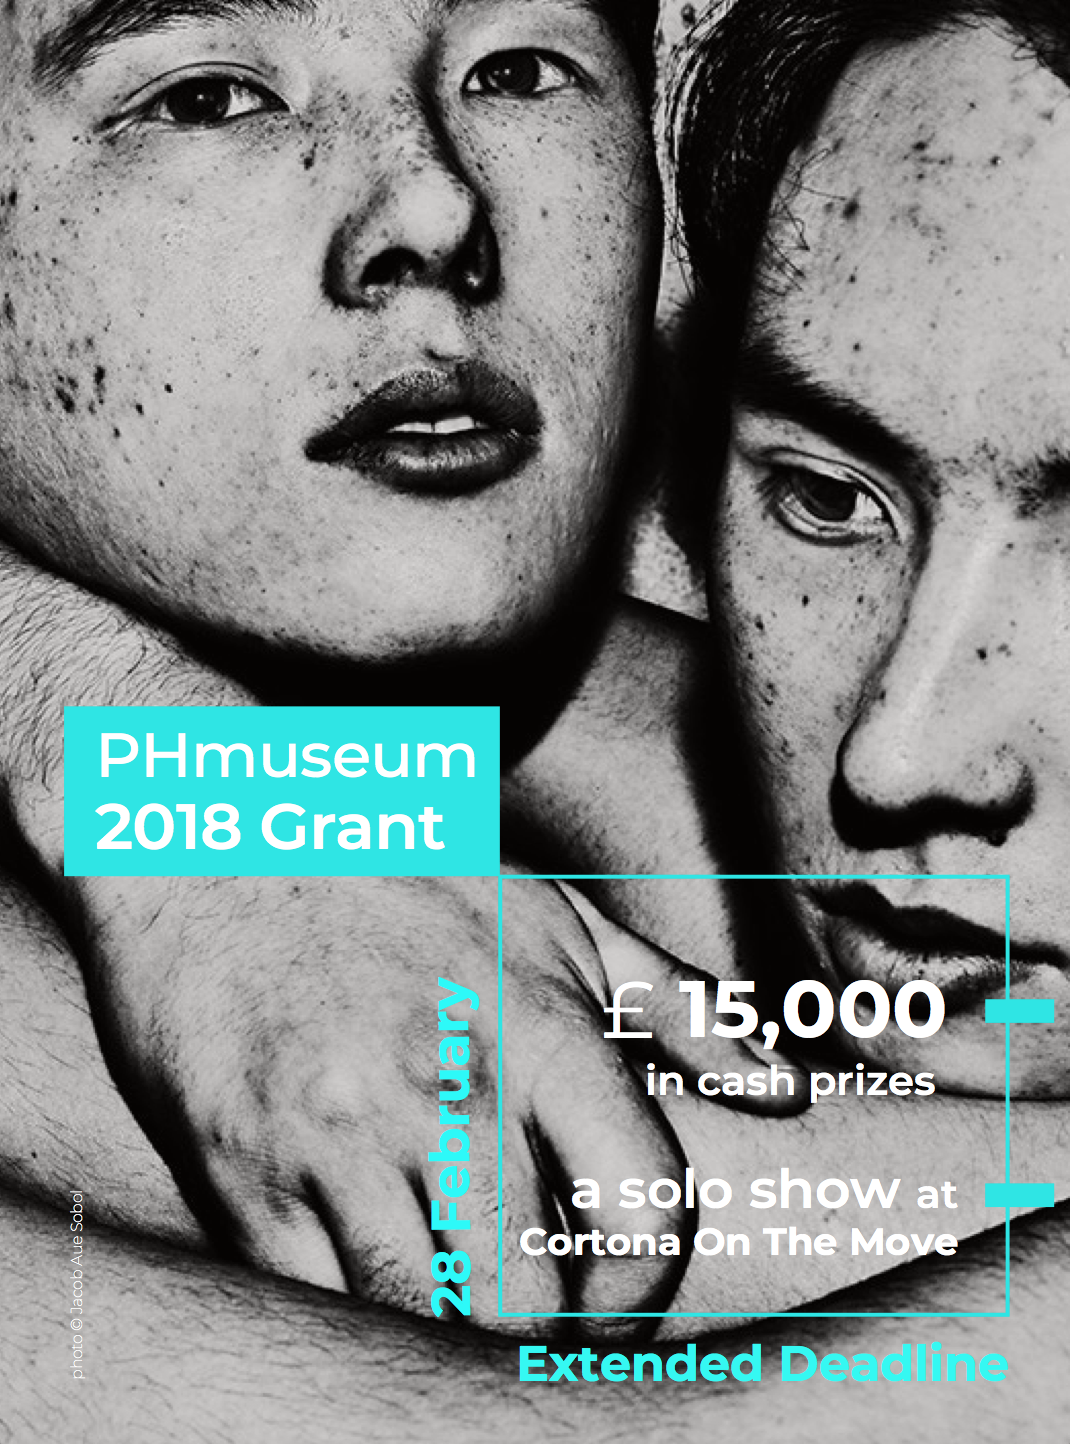 PHmuseum Grant Banner